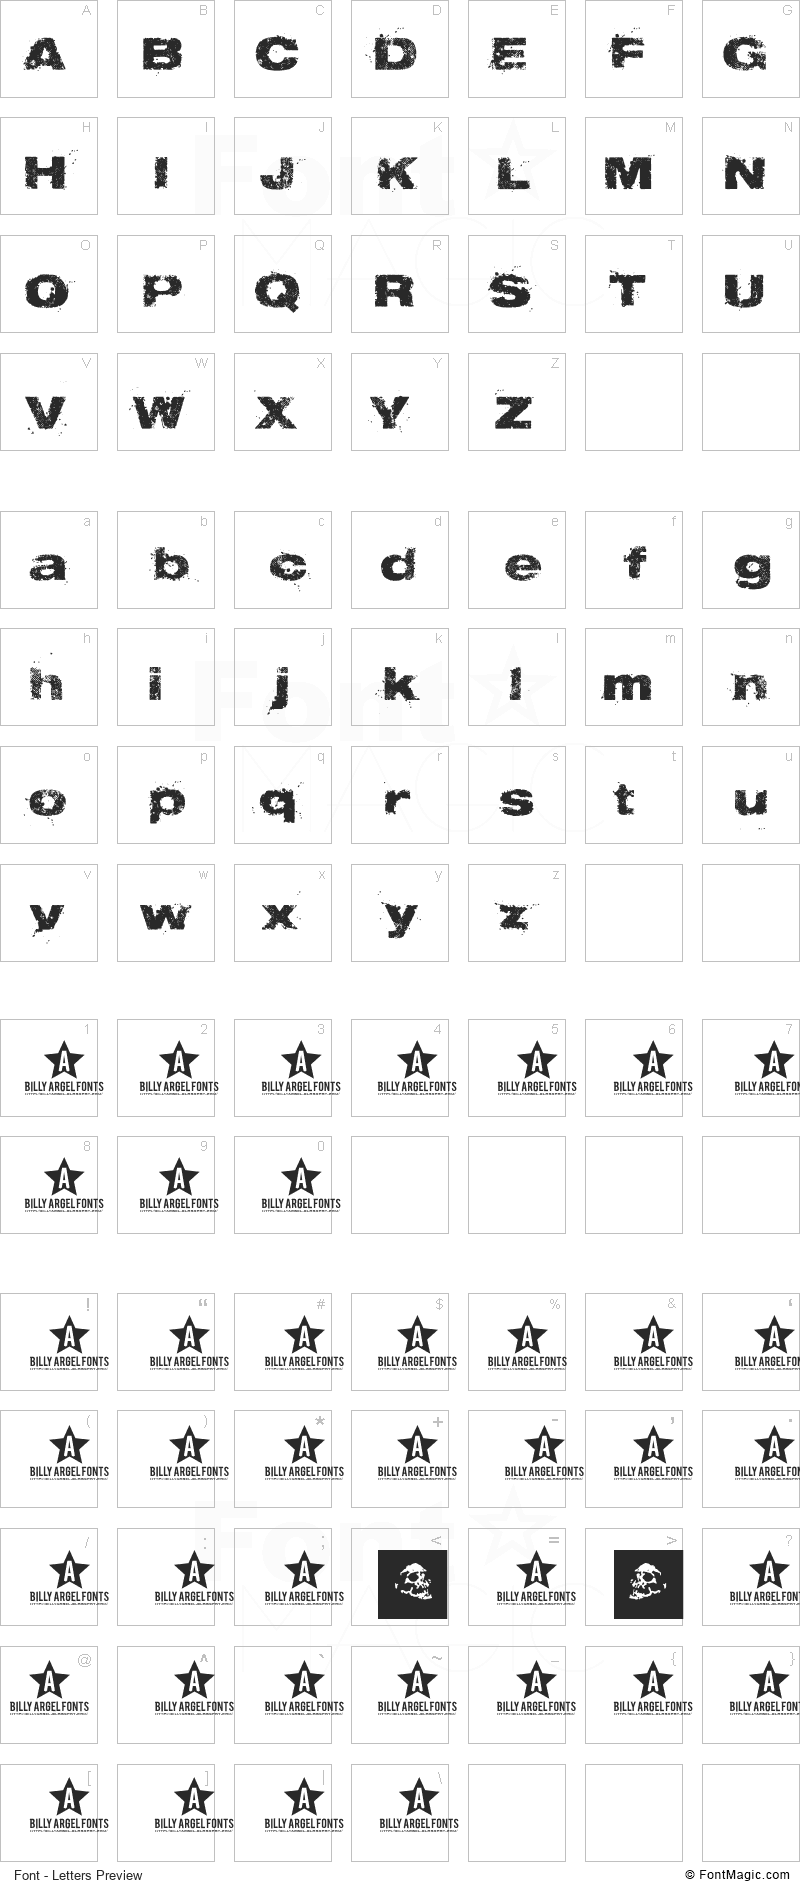 Tabu Font - All Latters Preview Chart